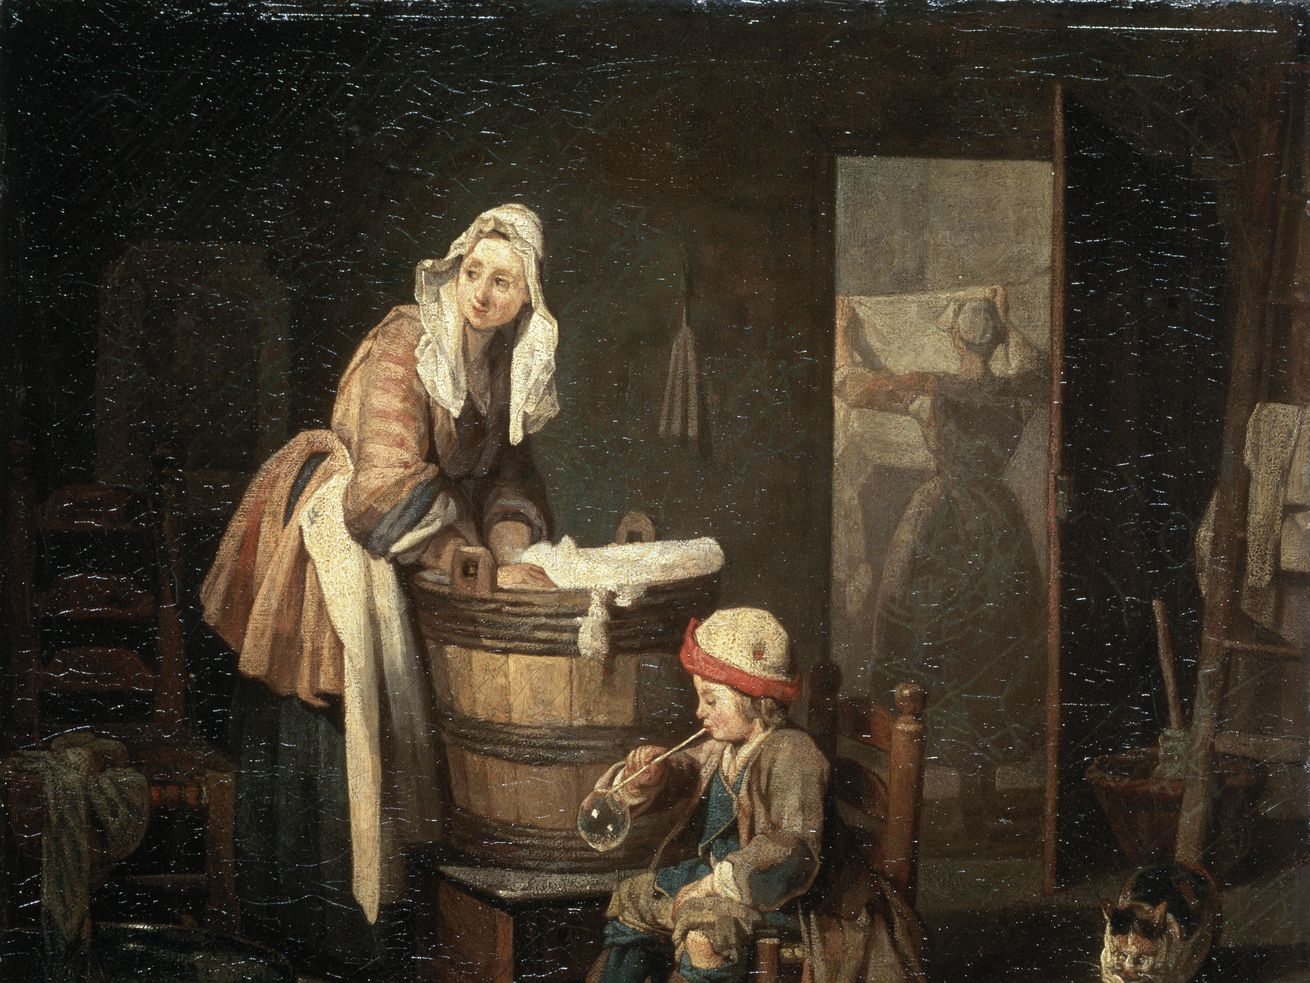 An oil painting shows a woman in 18th-century clothing washing clothes in a laundry tub while a child plays at her feet and another woman folds a sheet.